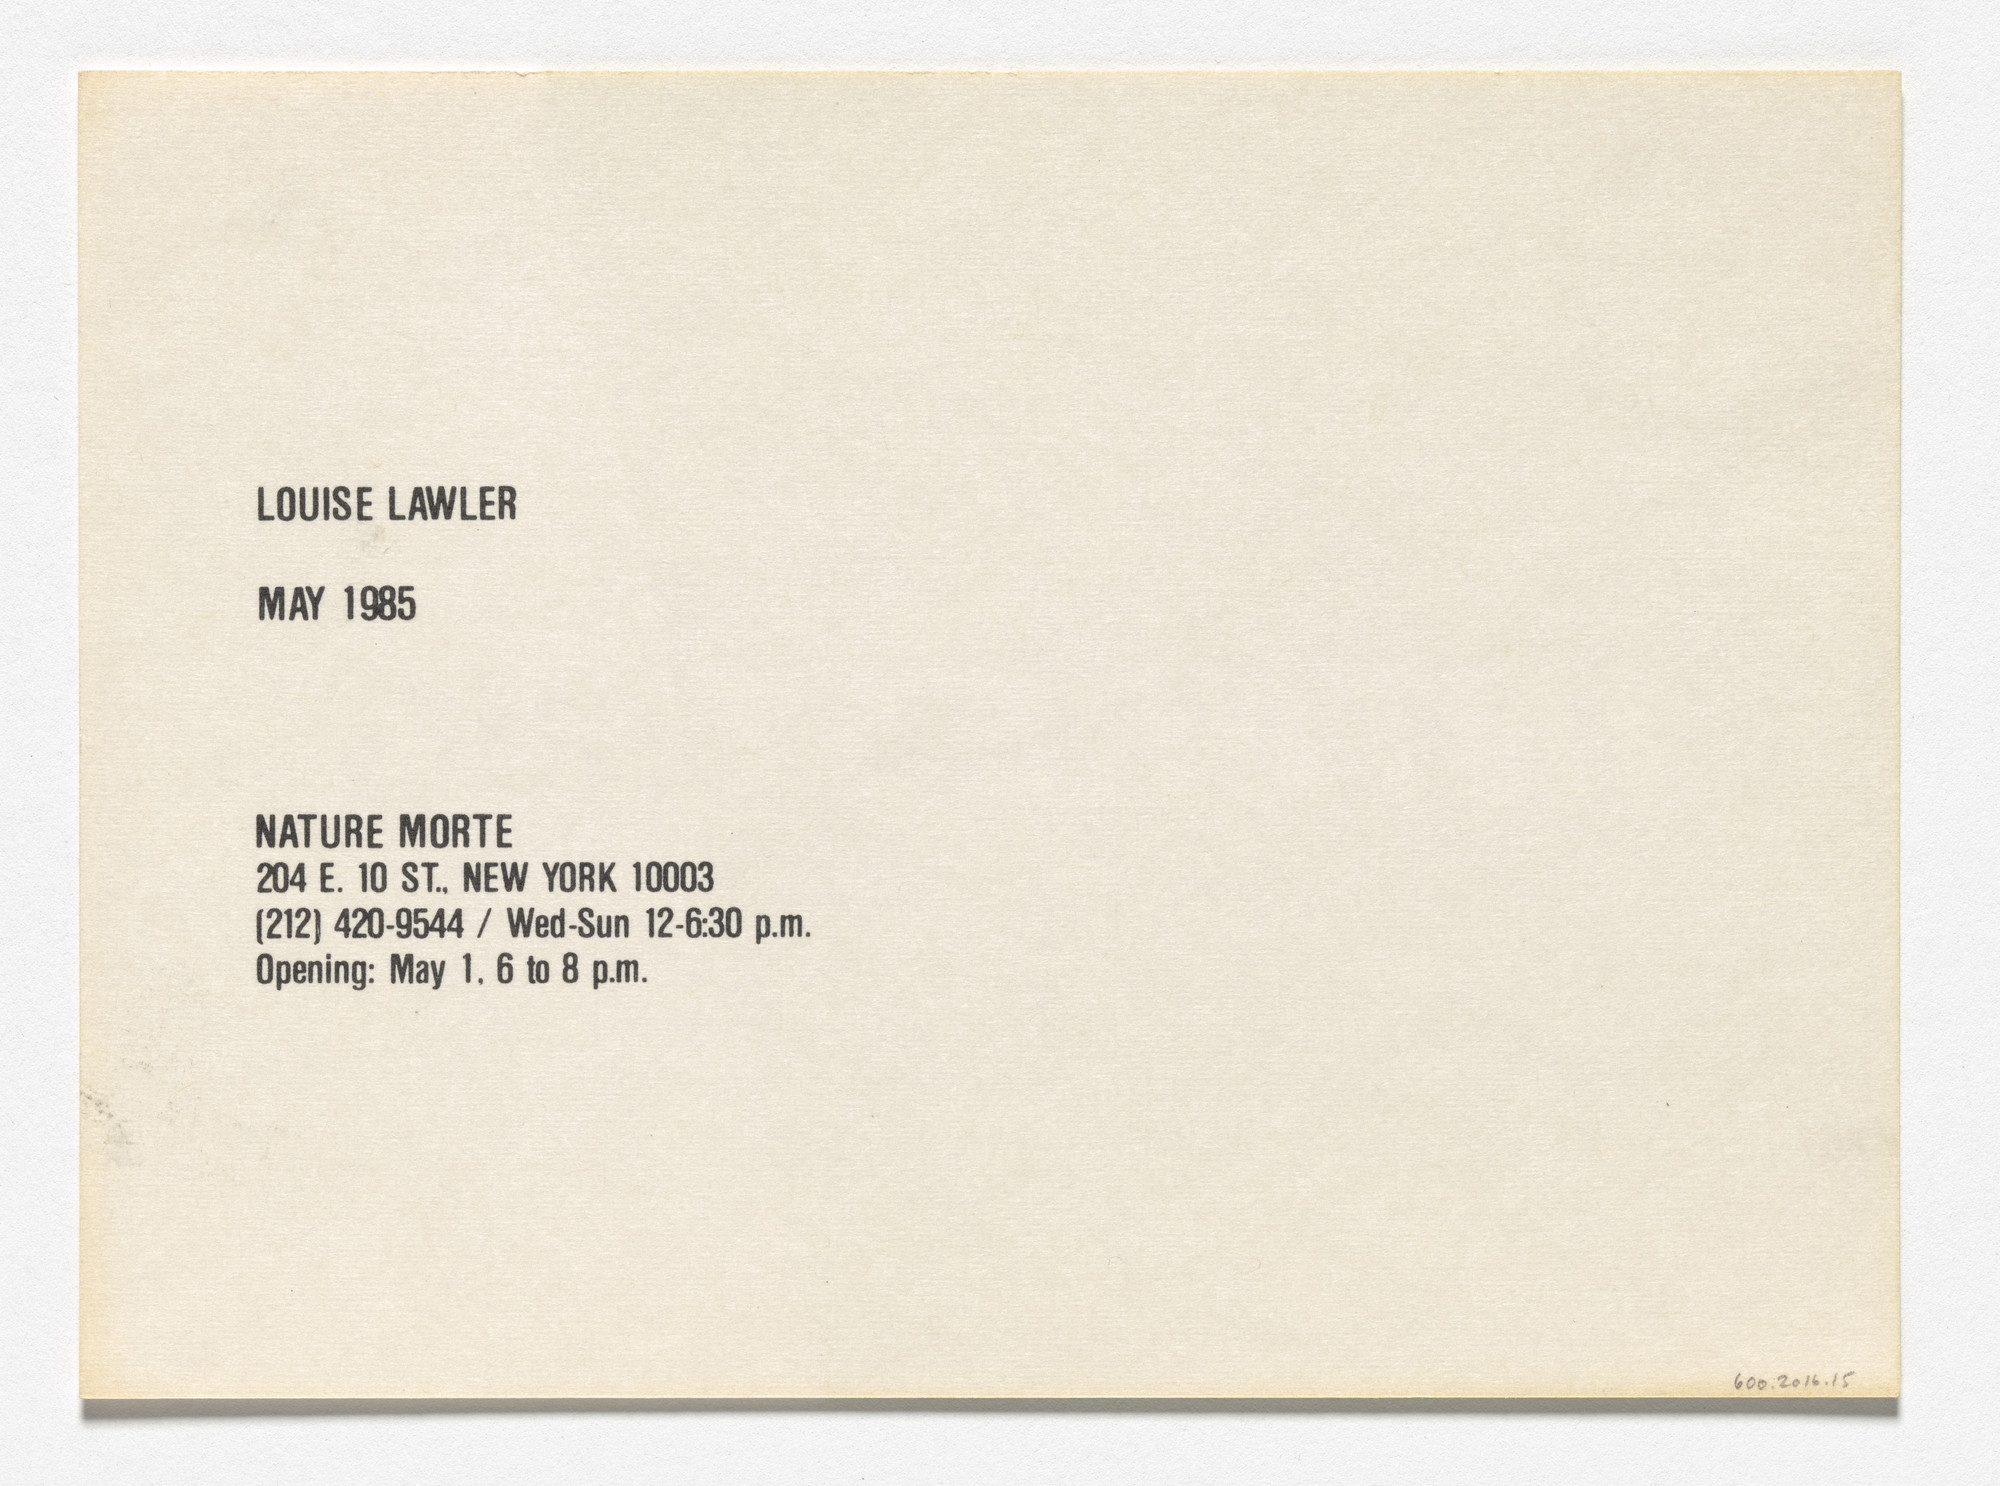 Louise Lawler. Announcement card for Interesting, Nature Morte, New York, May 1985. 1985